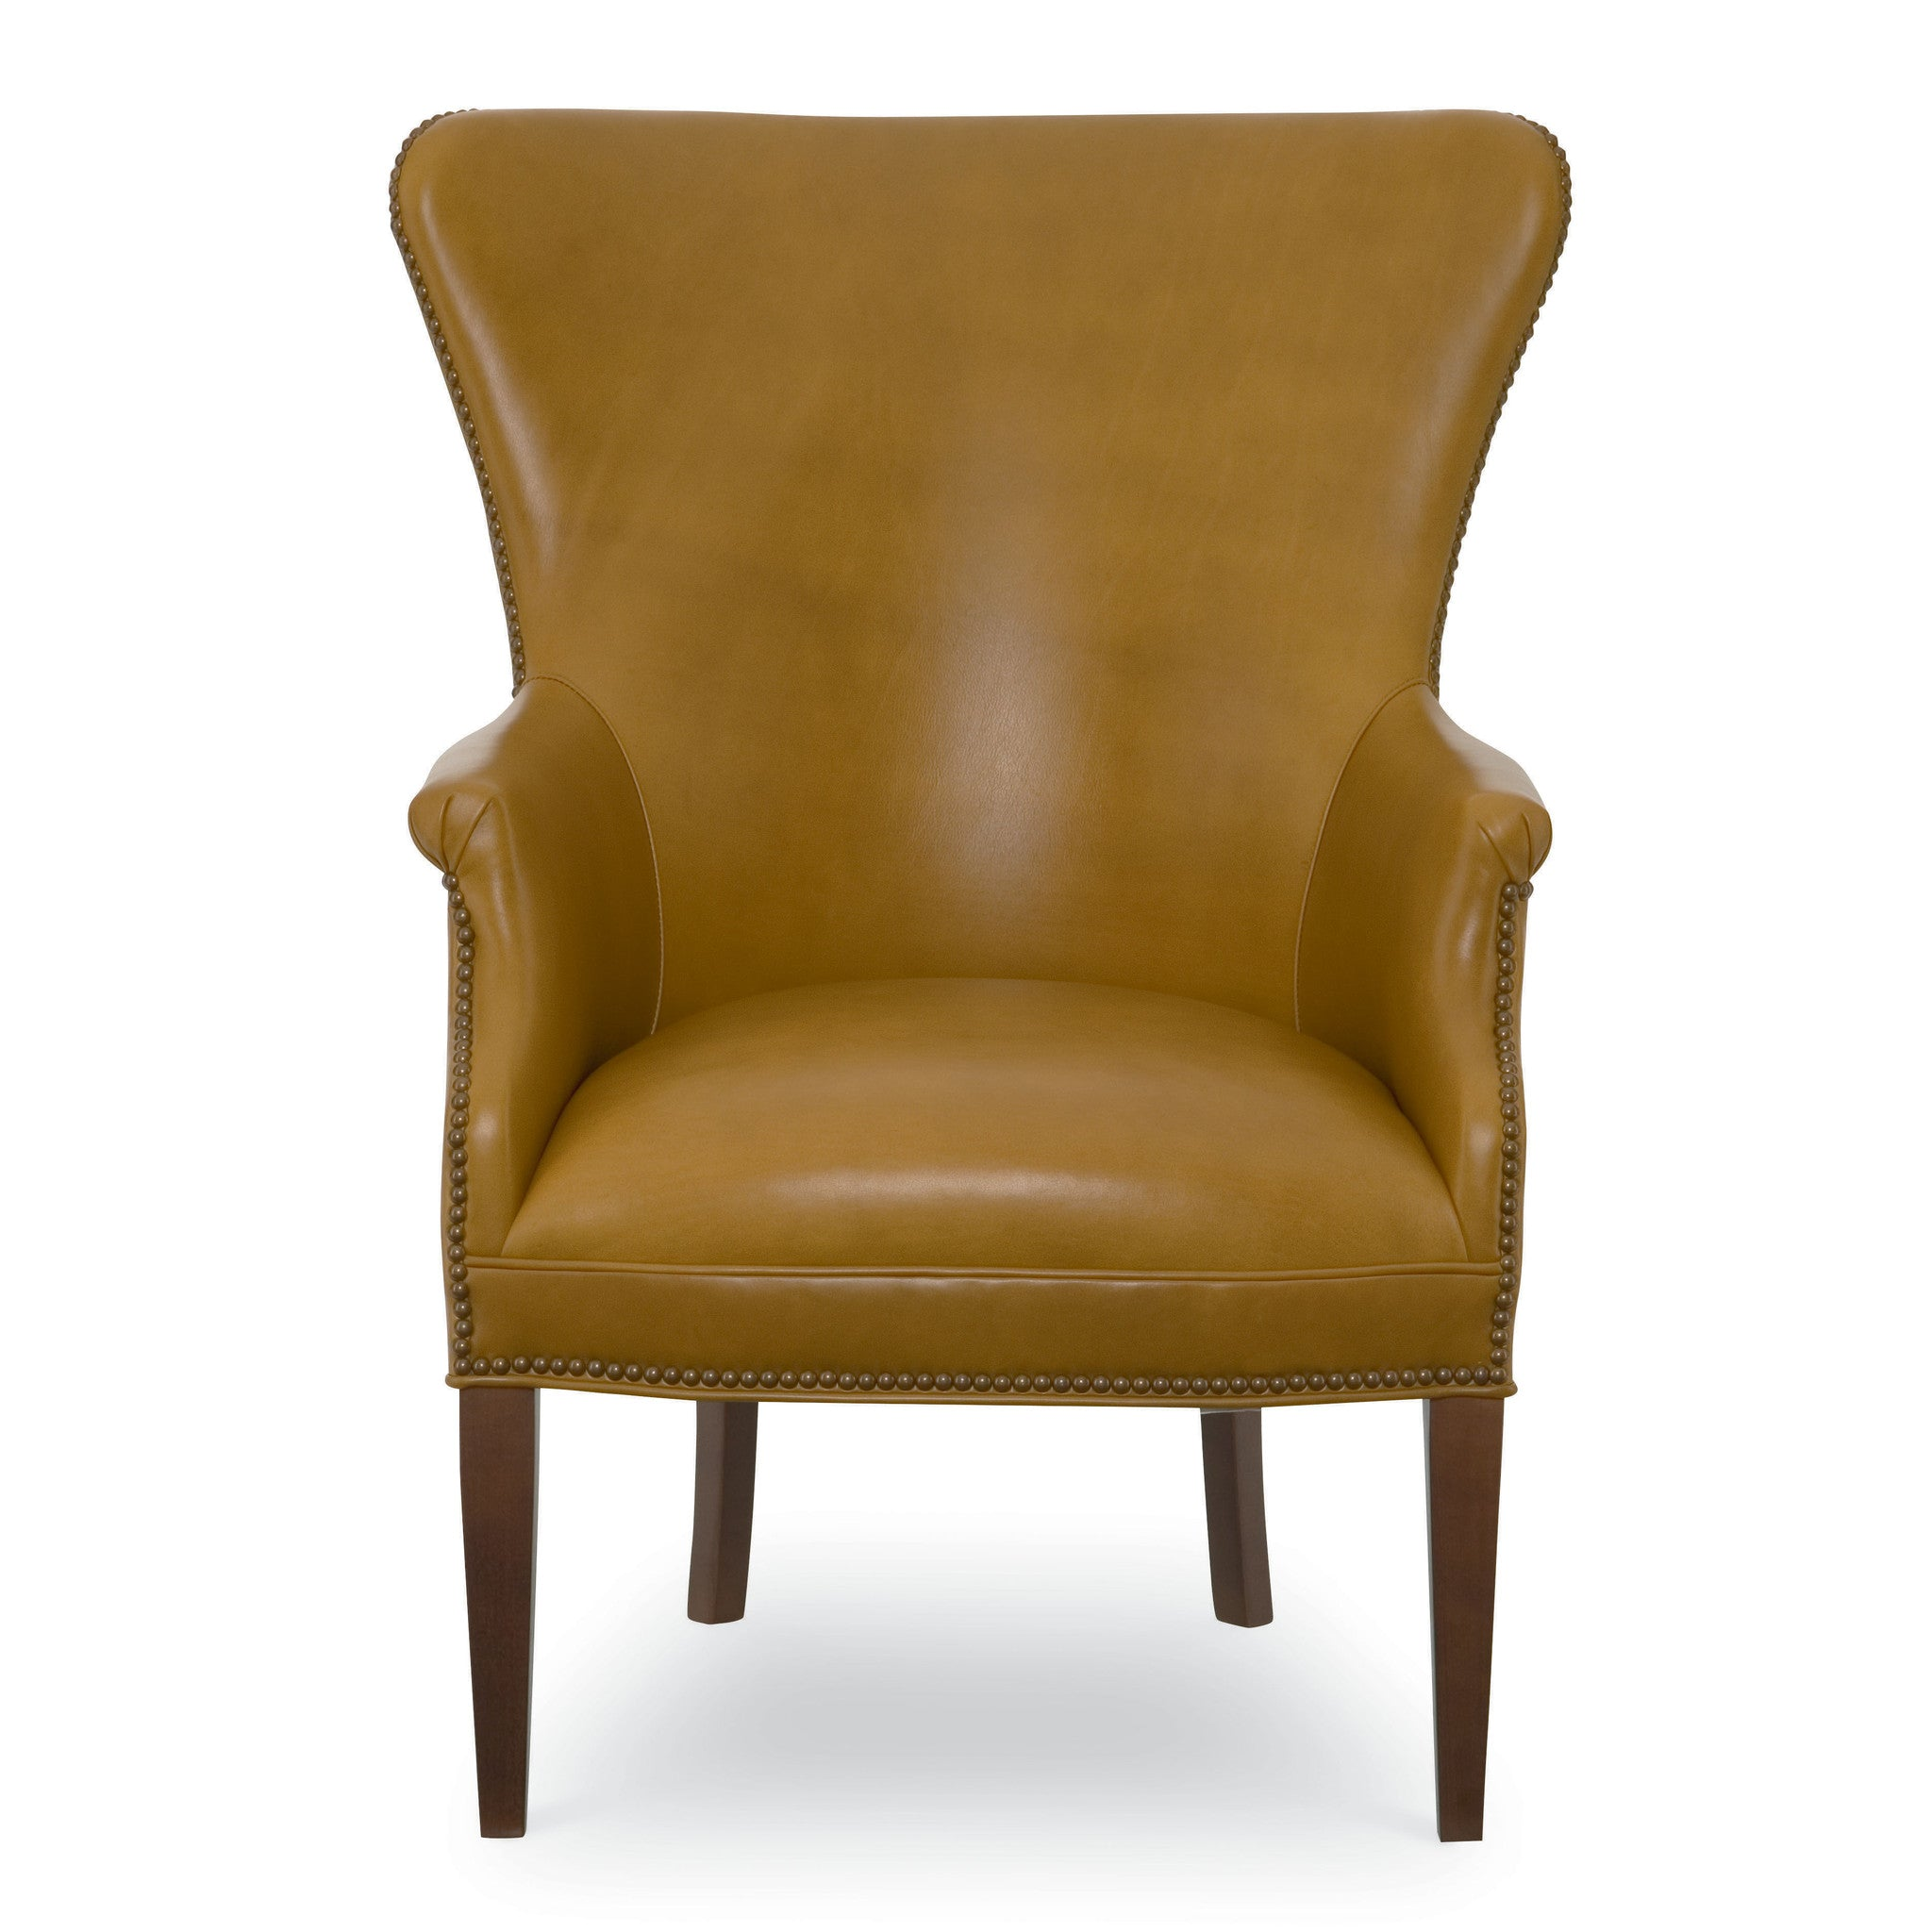 Mia Leather Chair